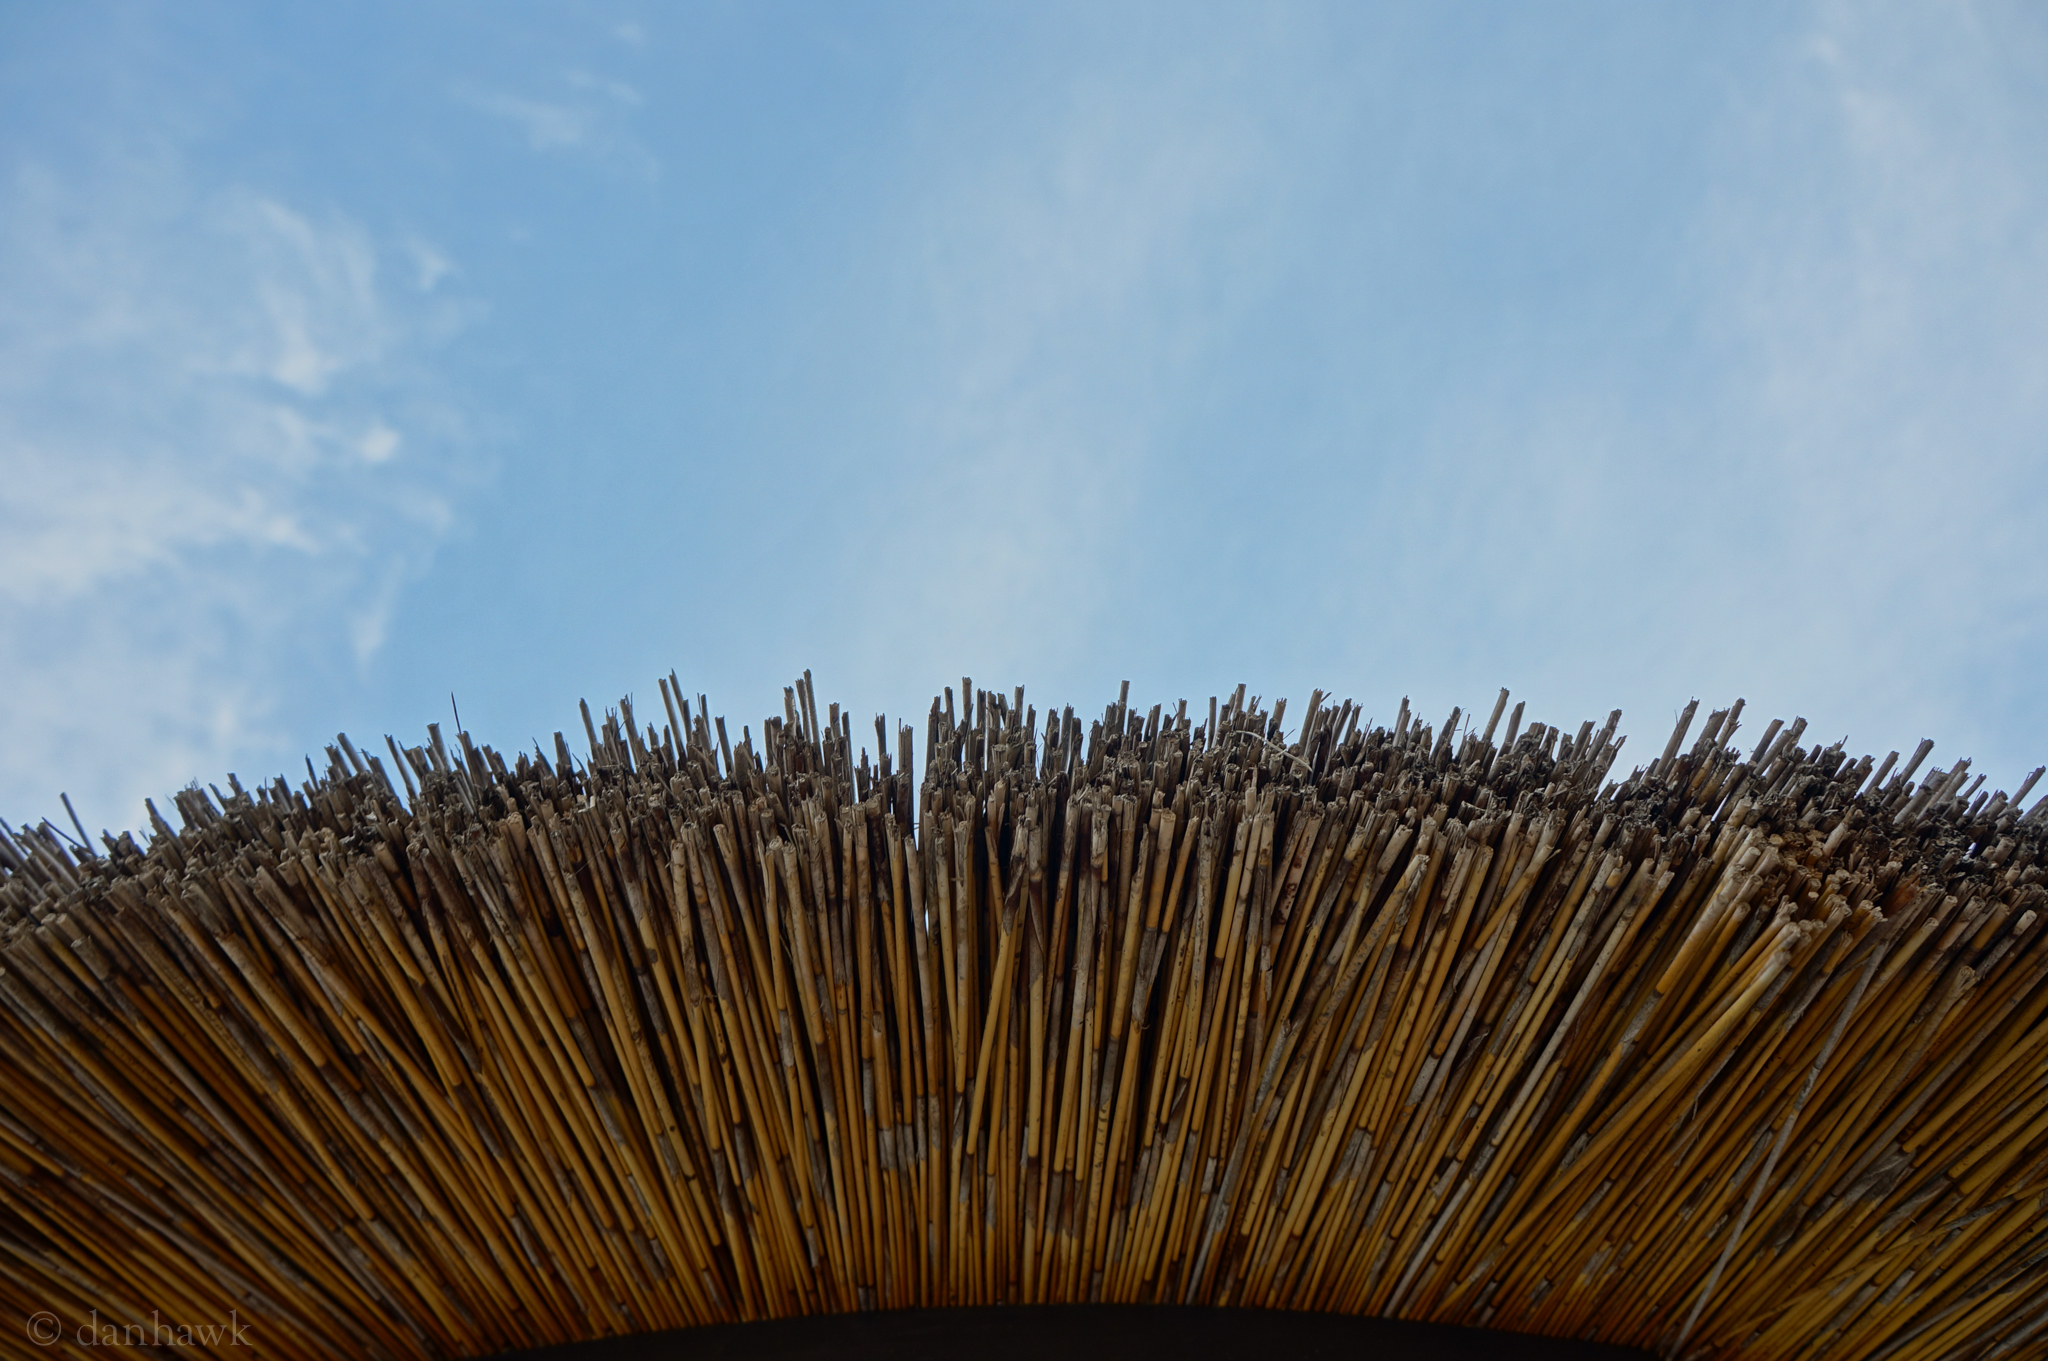 Palapa Sky | 365 Project | October 18th, 2012